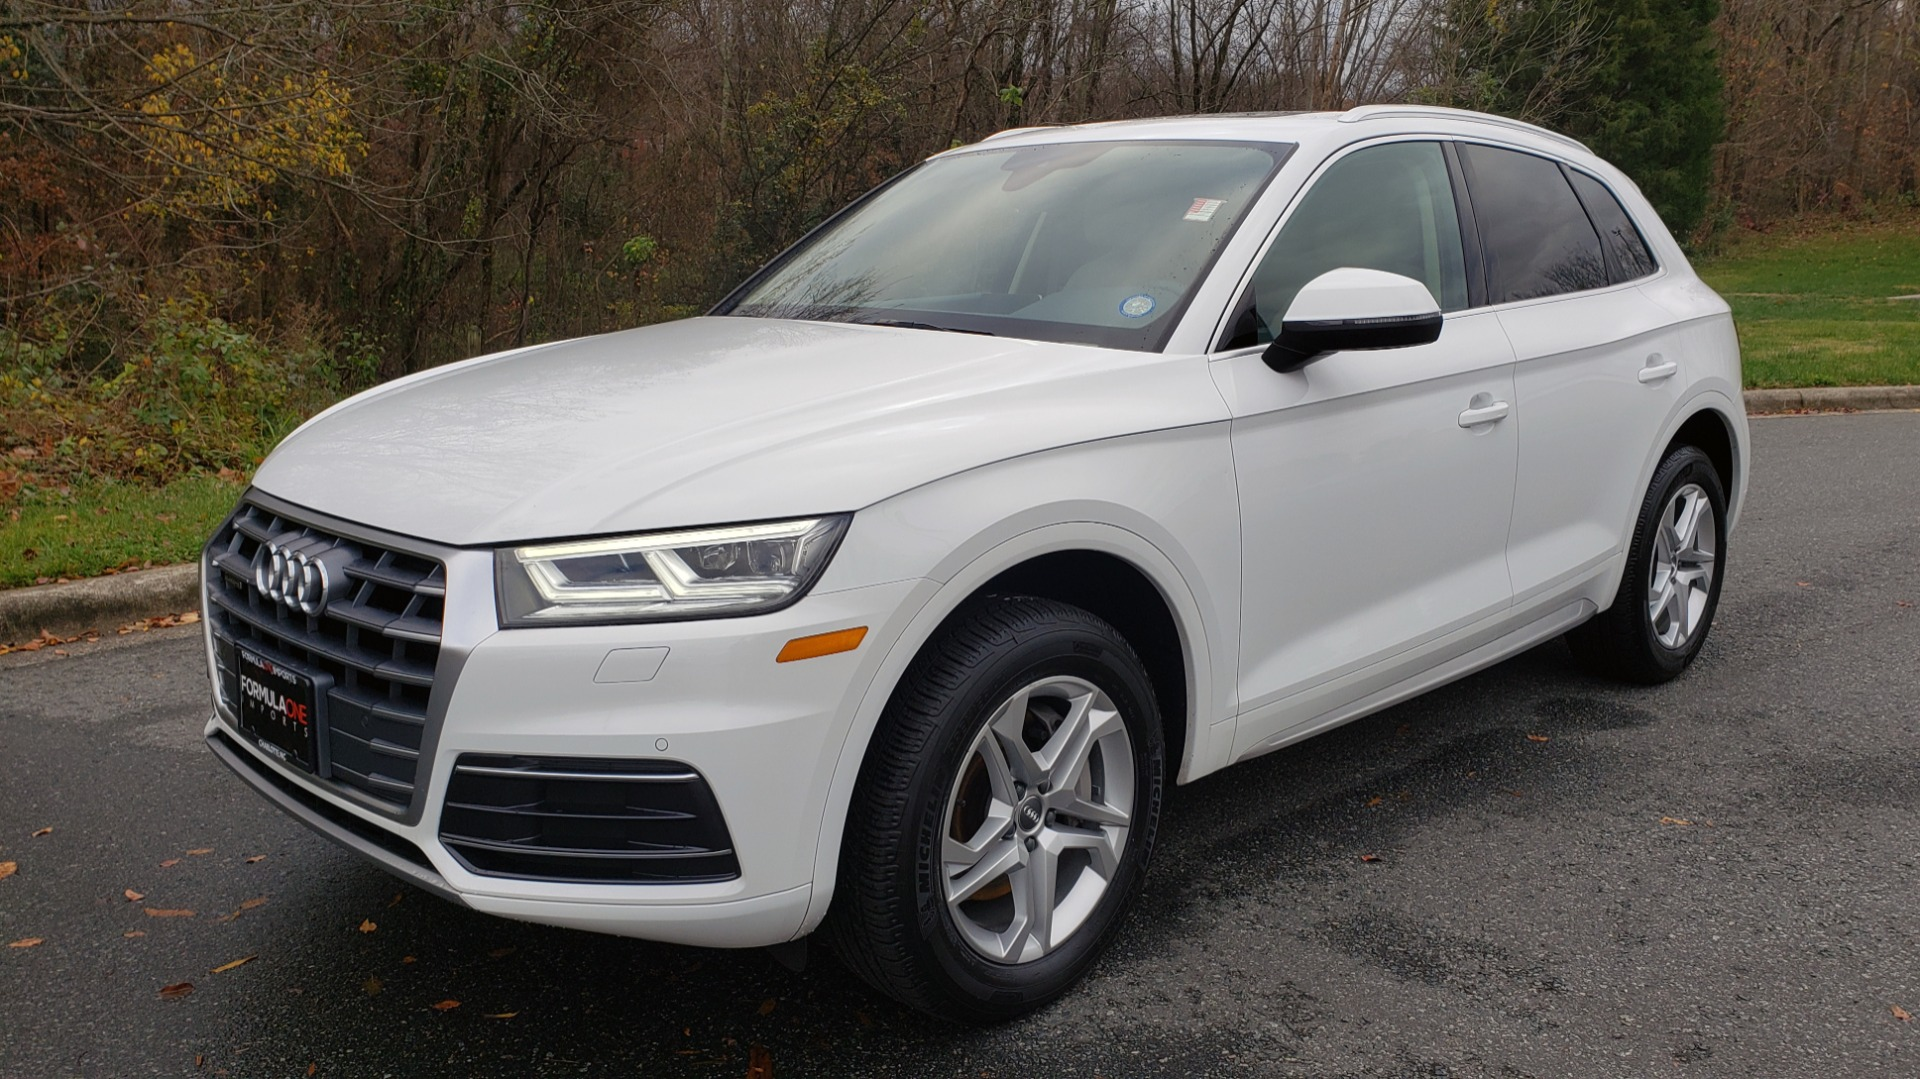 Used 2018 Audi Q5 PREMIUM PLUS / NAV PKG / SUNROOF / CLD WTHR / REARVIEW for sale Sold at Formula Imports in Charlotte NC 28227 1